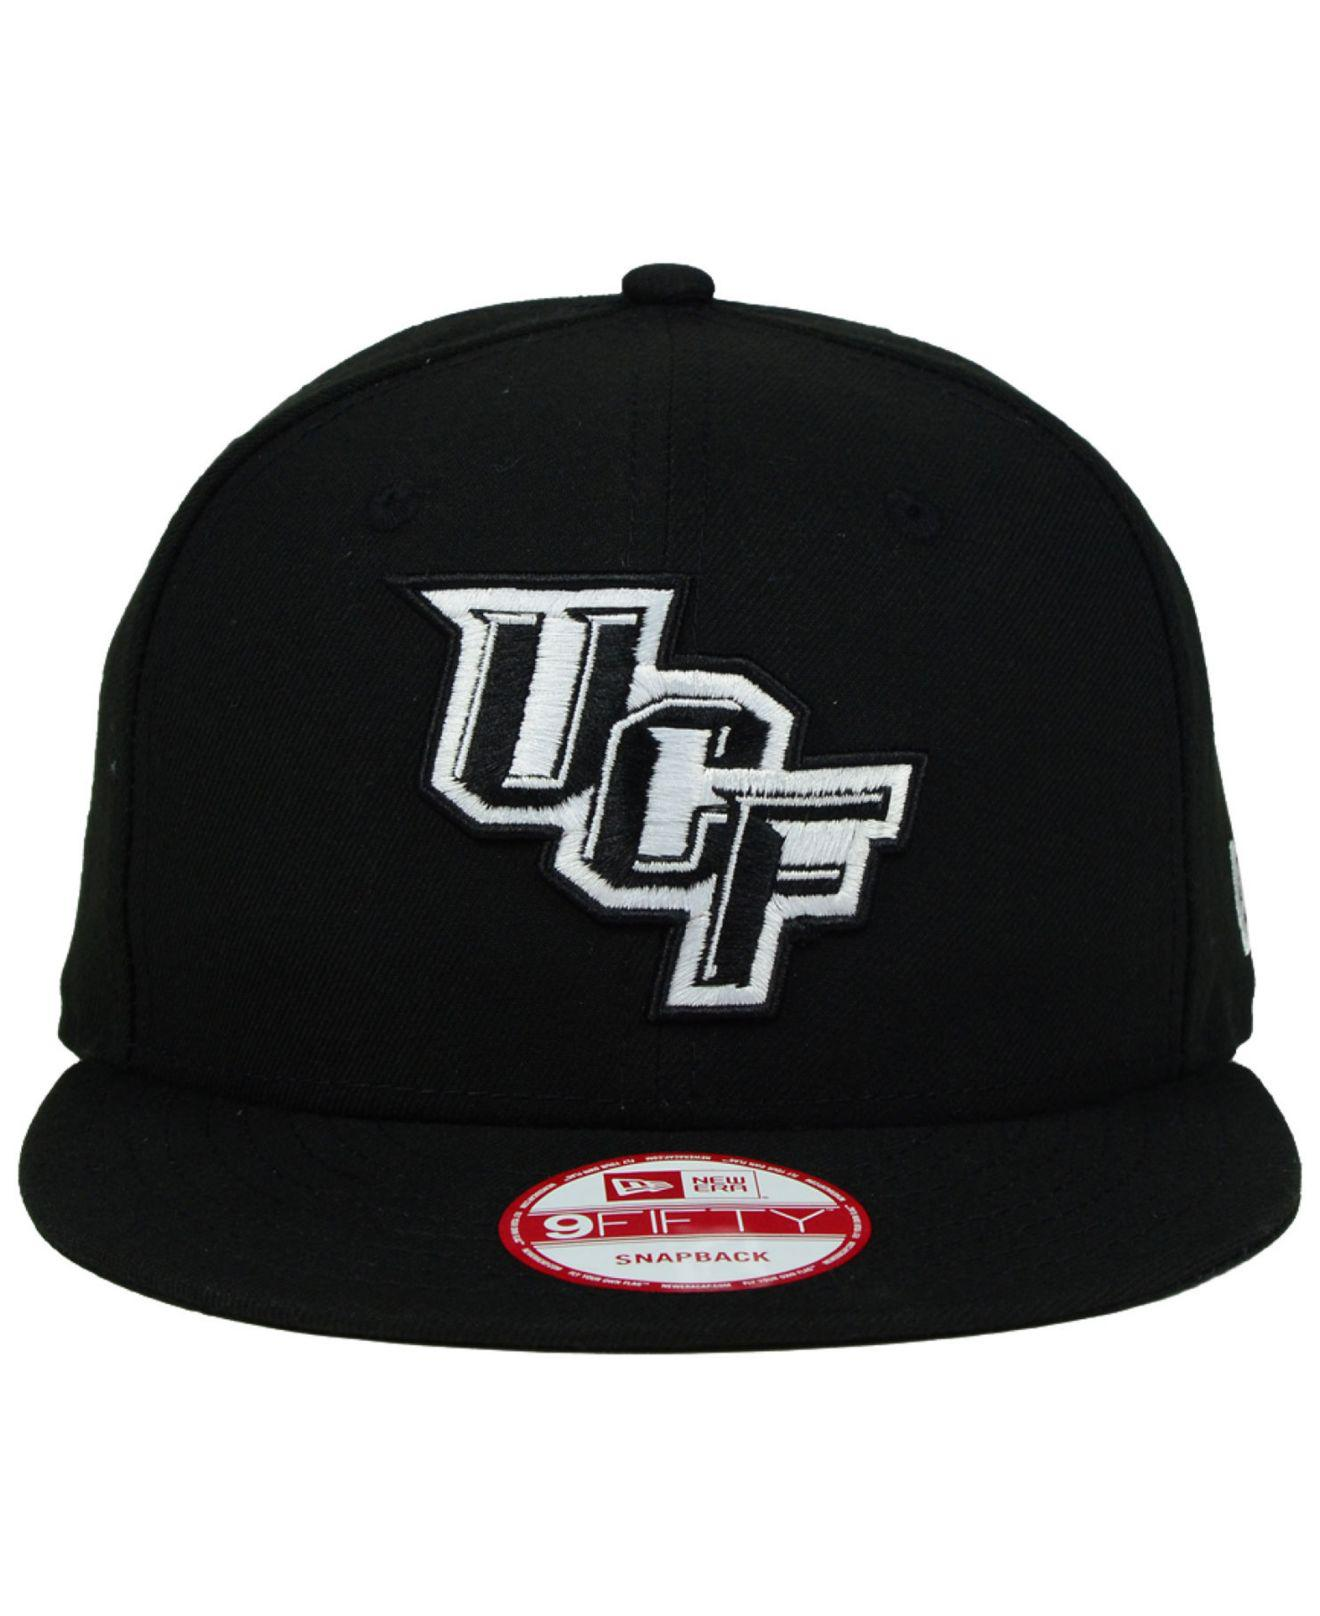 37cb30d671a ... switzerland lyst ktz ucf knights black white 9fifty snapback cap in  black for men c539e b83b7